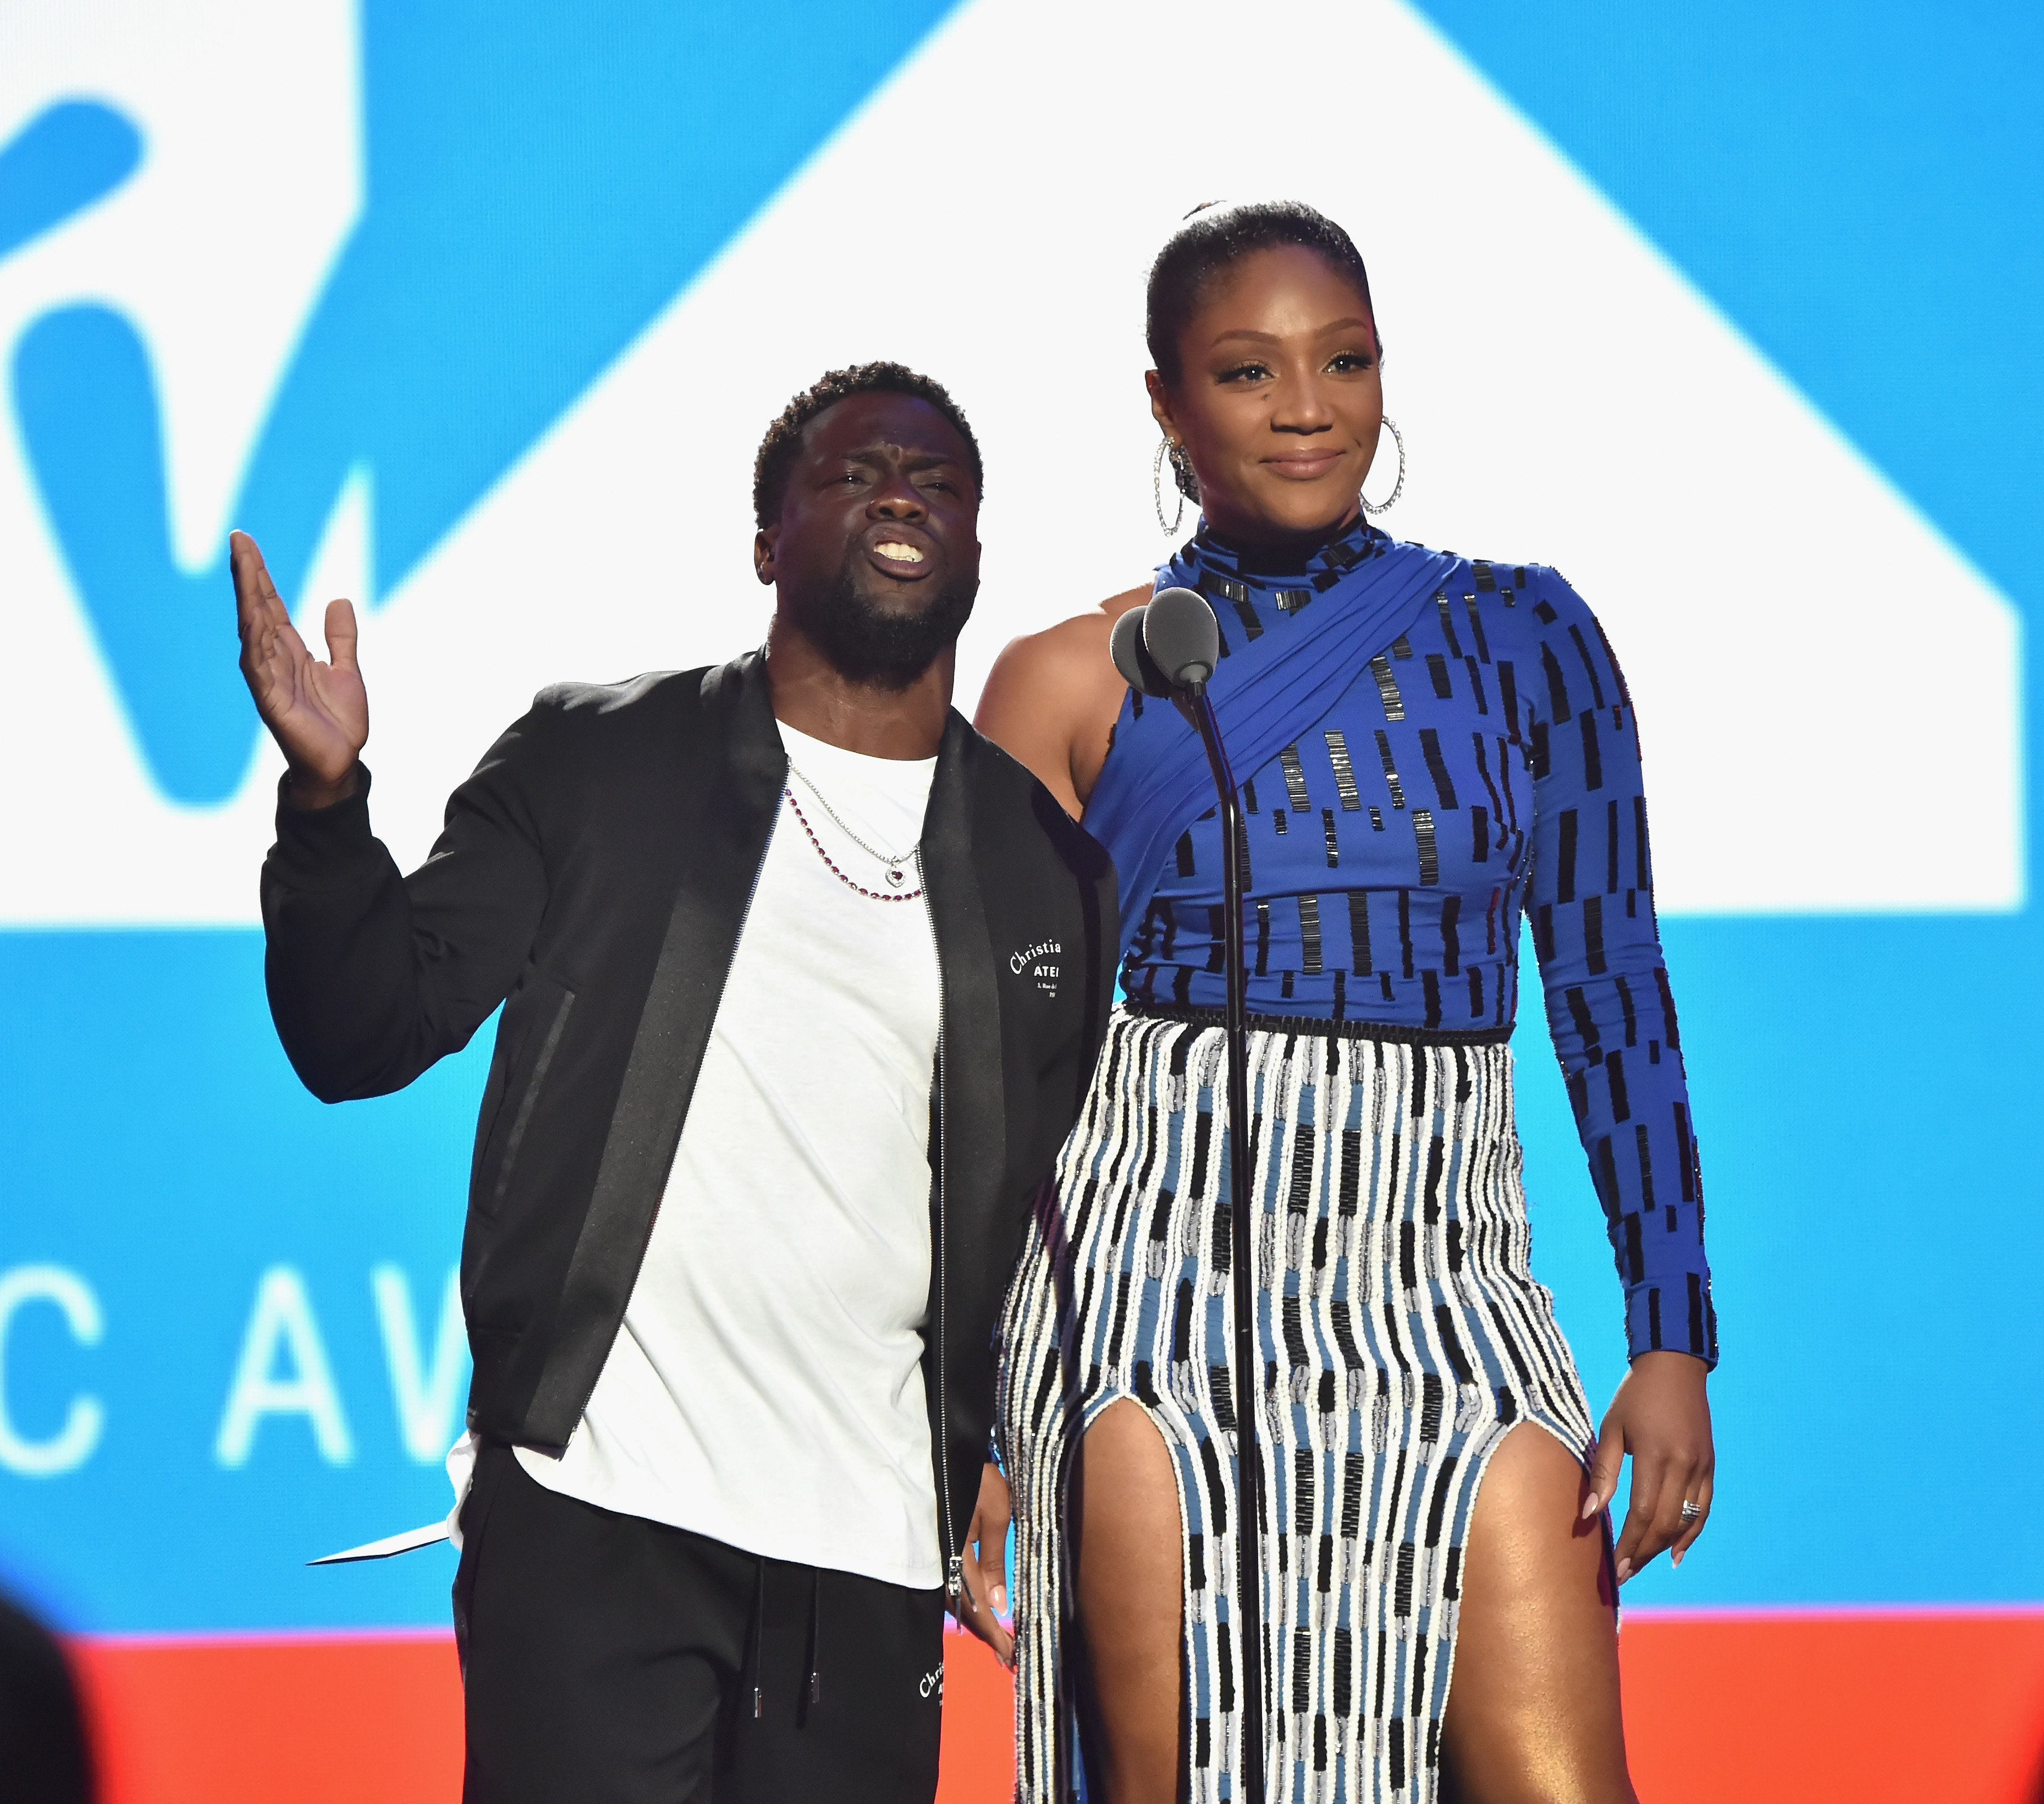 NEW YORK, NY - AUGUST 20:  Kevin Hart and Tiffany Haddish speak onstage during the 2018 MTV Video Music Awards at Radio City Music Hall on August 20, 2018 in New York City.  (Photo by Kevin Mazur/WireImage)